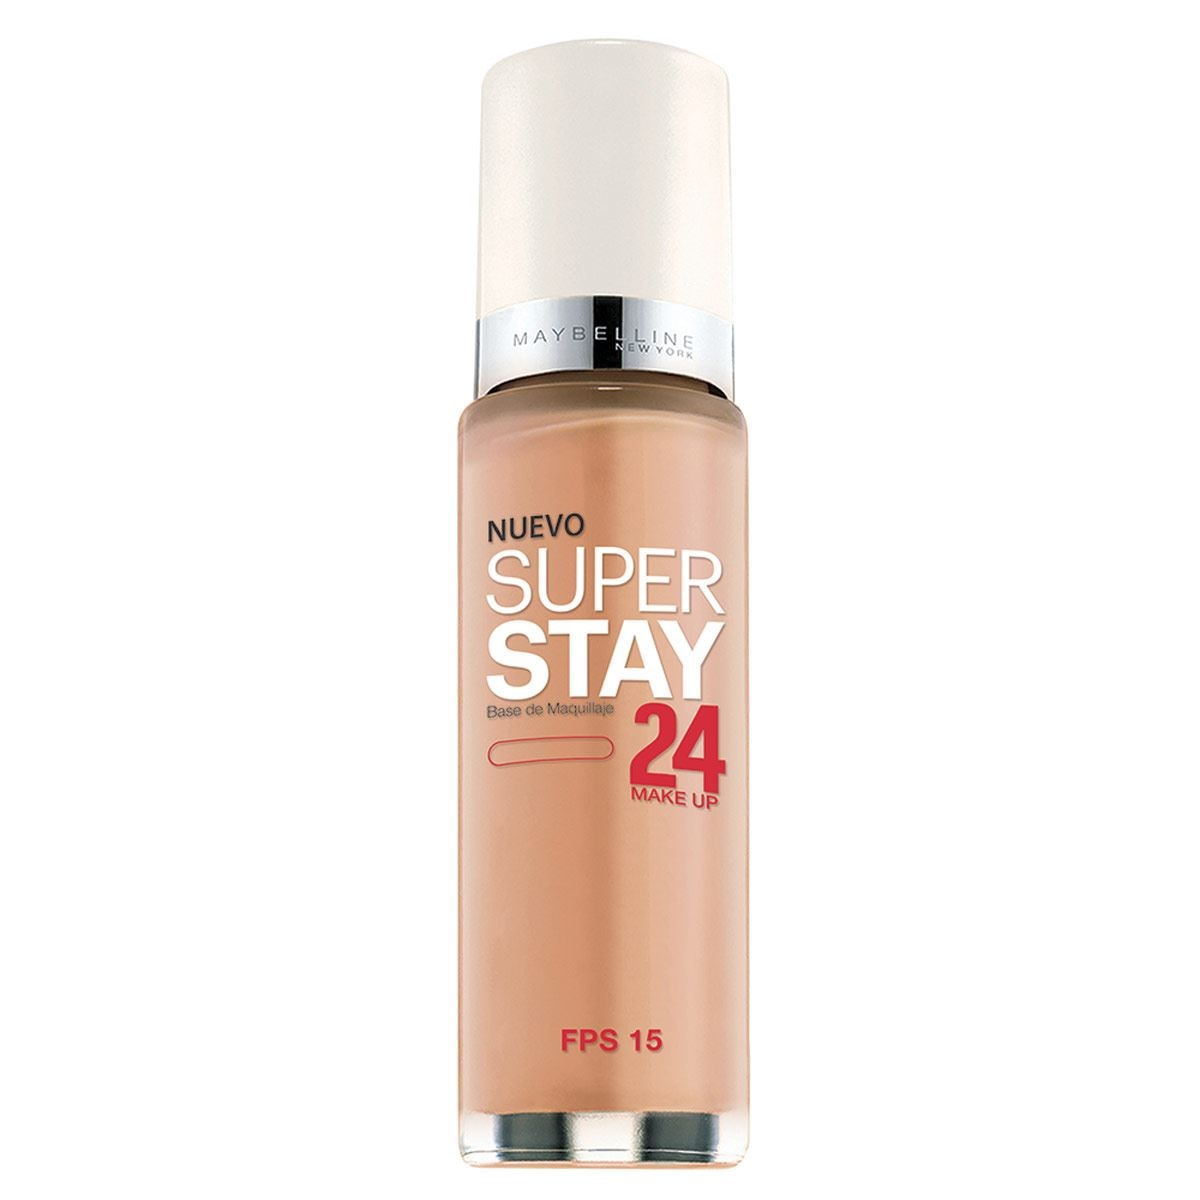 Base de Maquillaje Superstay 24 Maybelline Nude